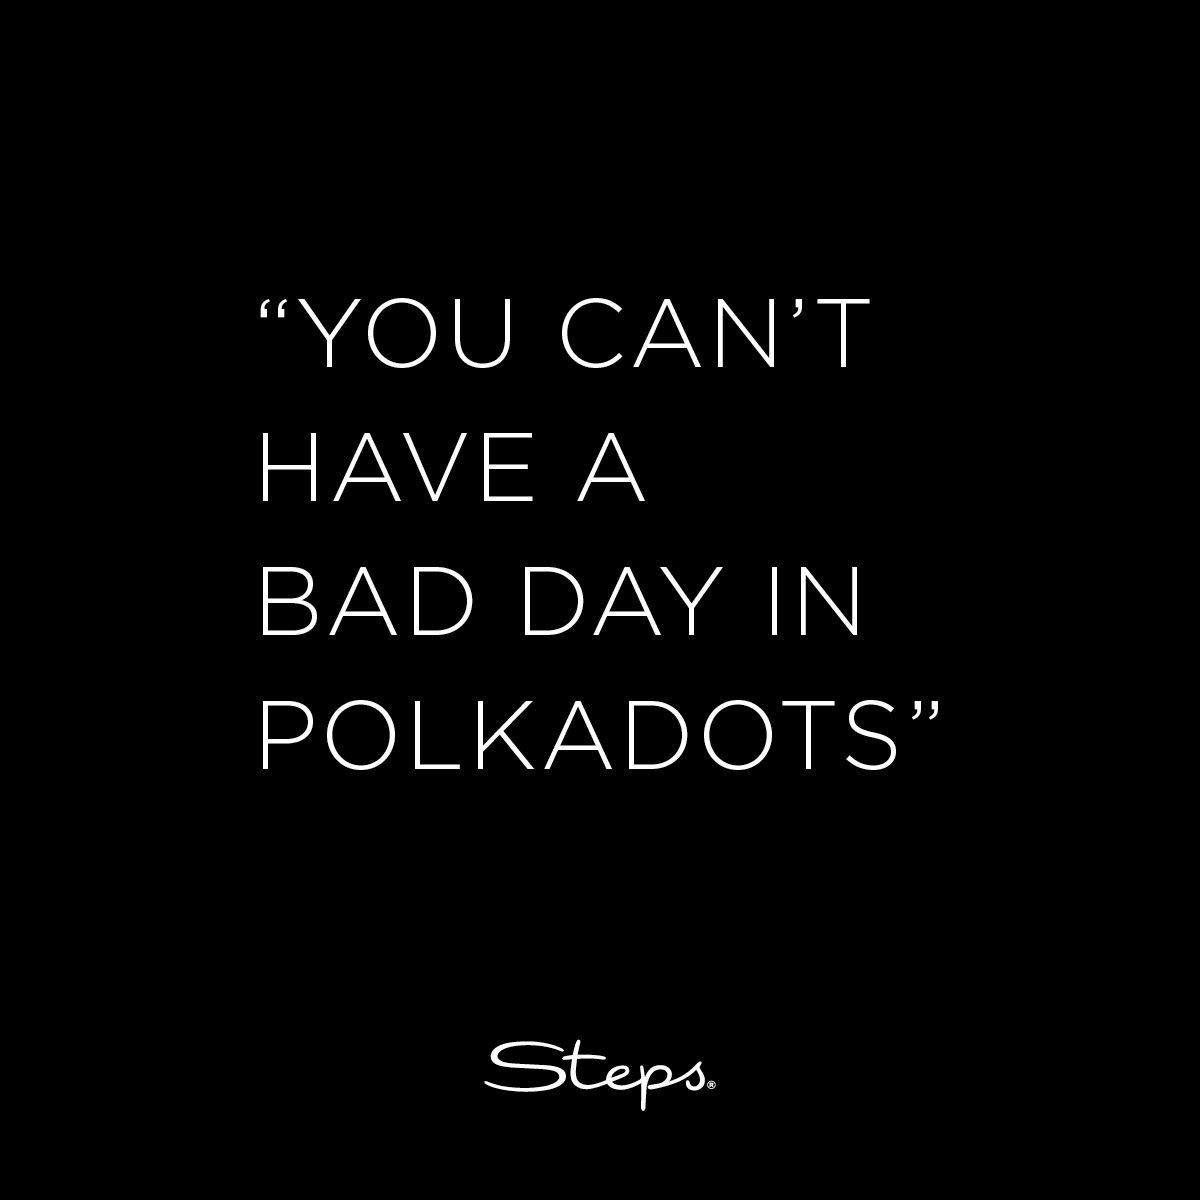 Quote: You can't have a bad day in polkadots